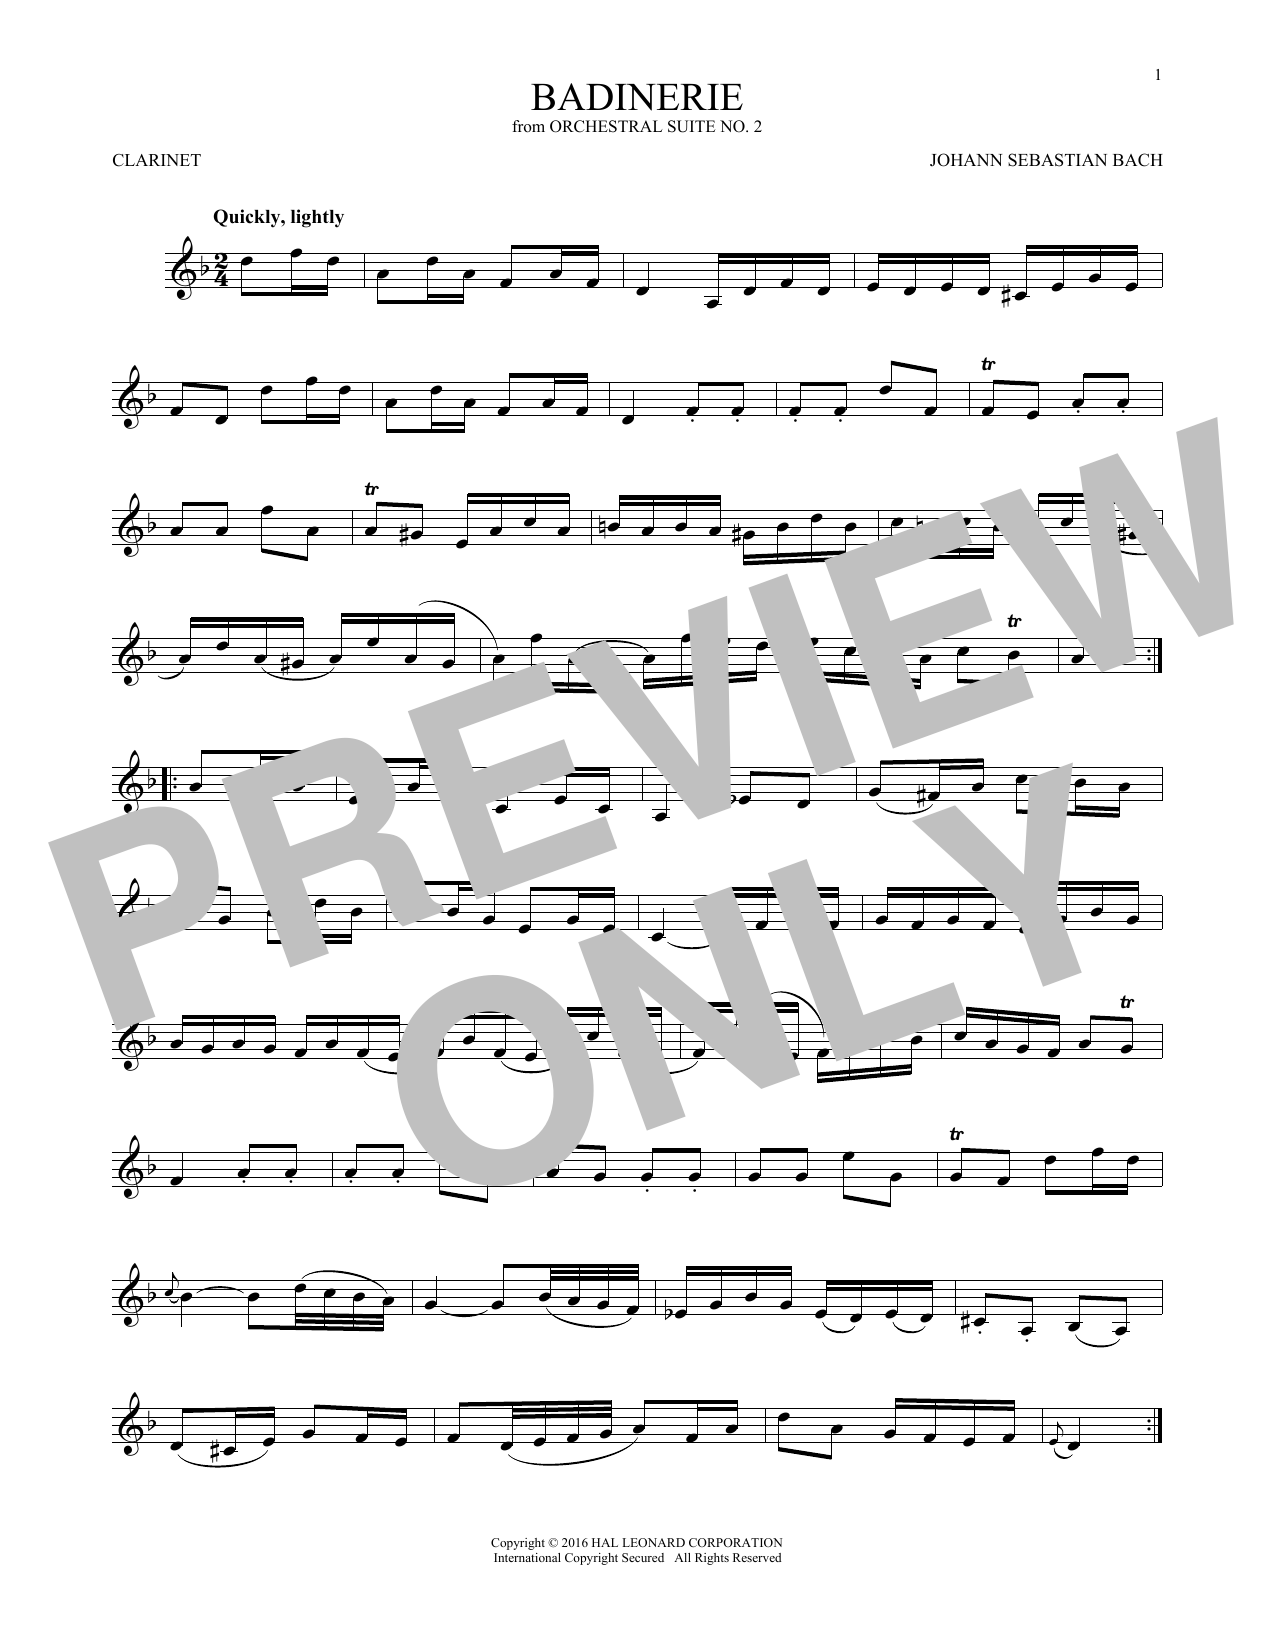 Johann Sebastian Bach Badinerie (Suite No. 2) sheet music notes and chords. Download Printable PDF.